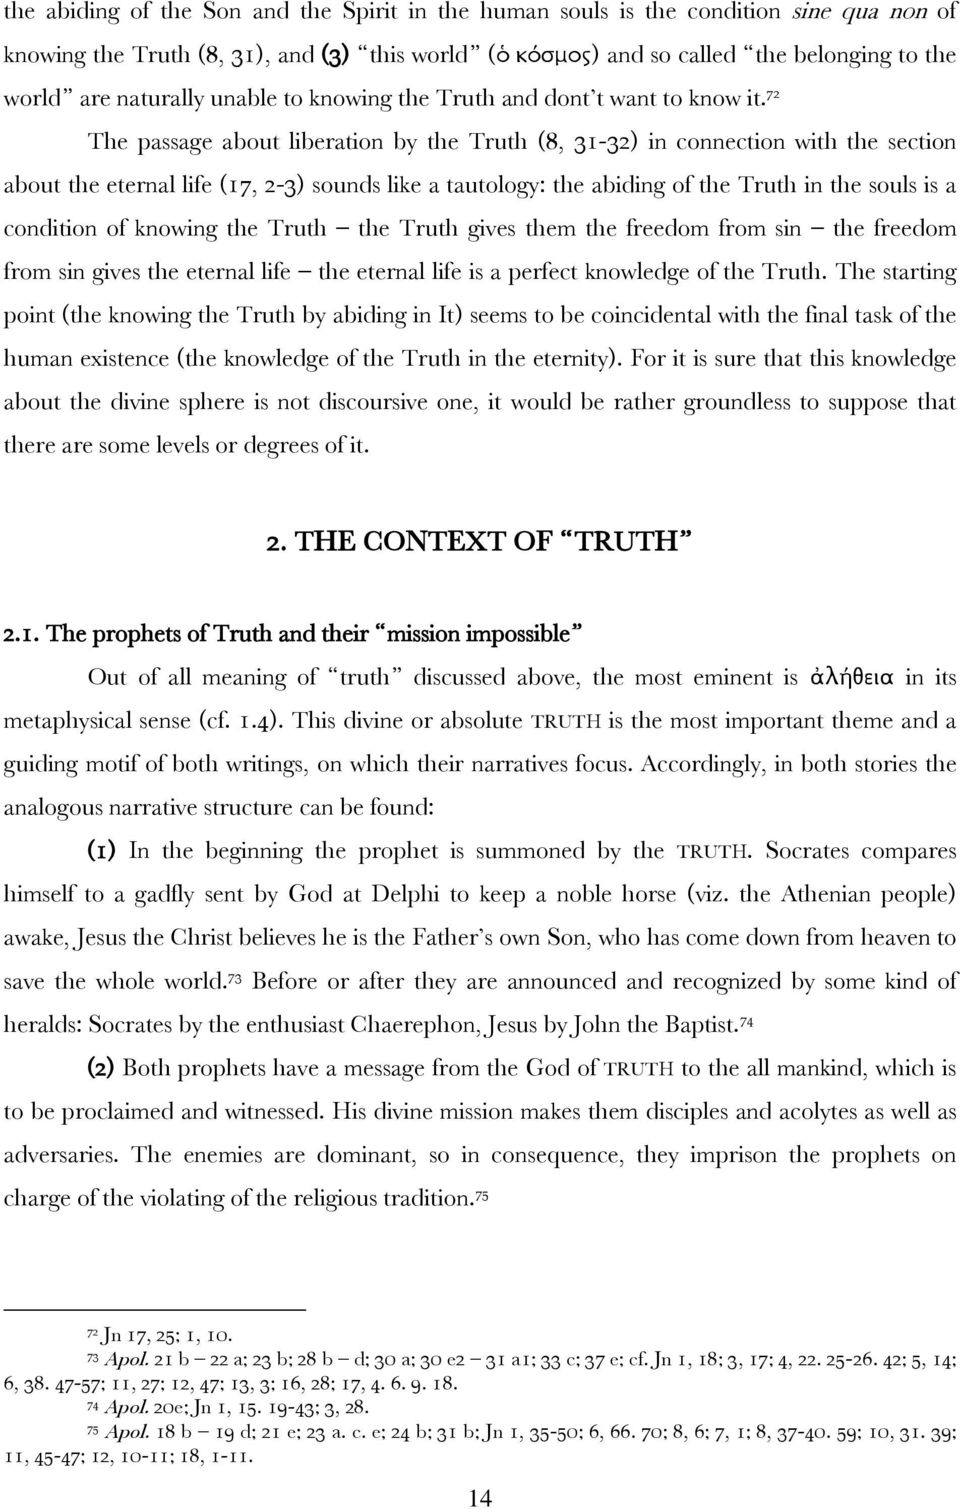 72 The passage about liberation by the Truth (8, 31-32) in connection with the section about the eternal life (17, 2-3) sounds like a tautology: the abiding of the Truth in the souls is a condition